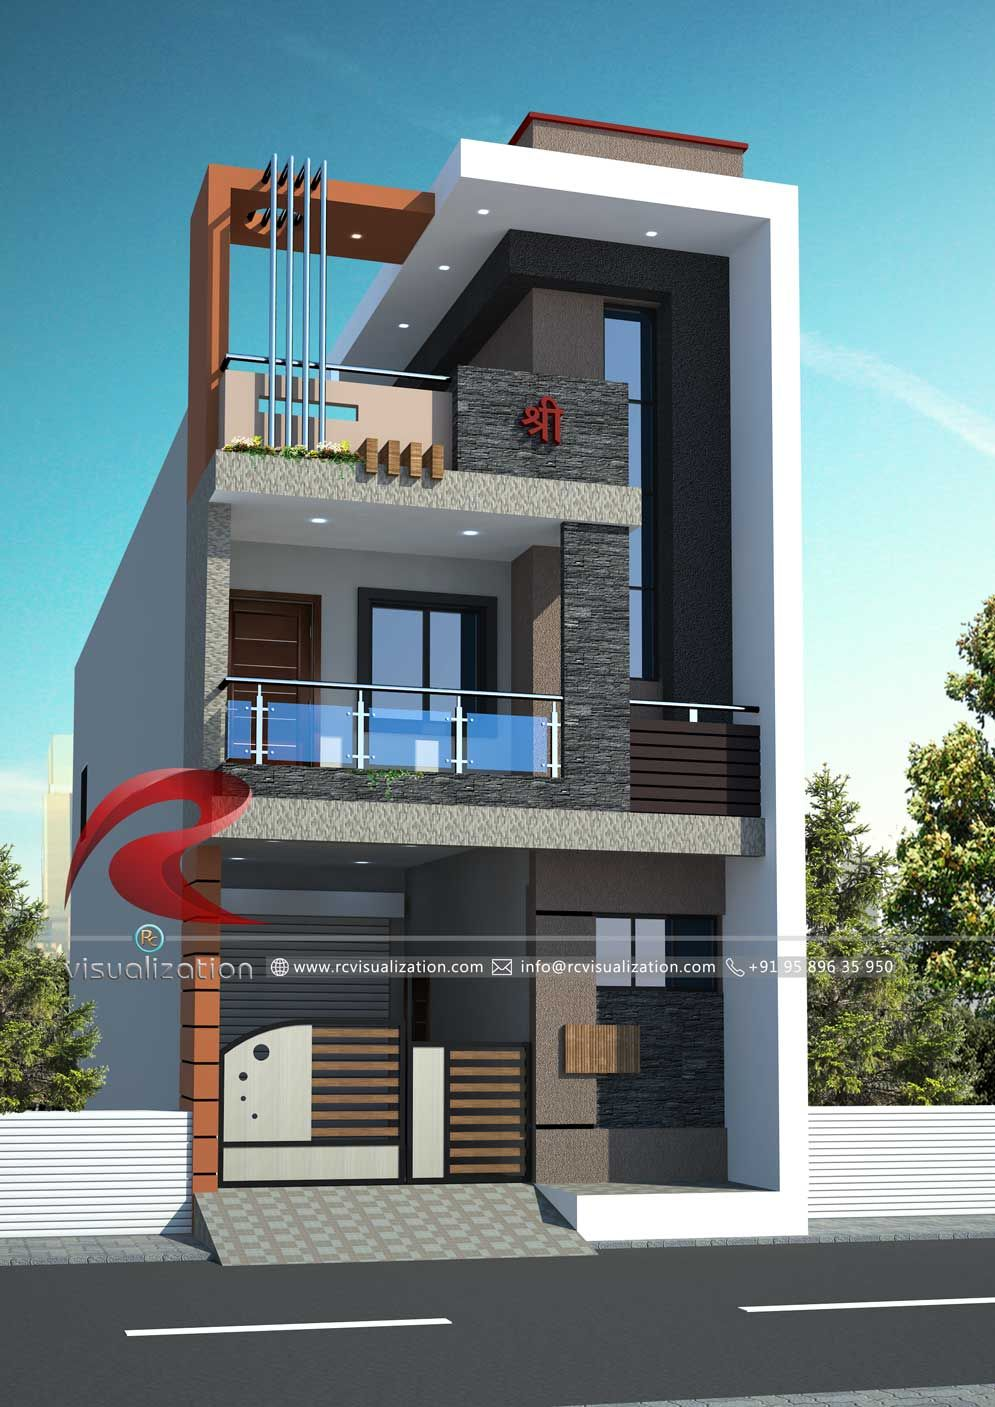 3d Narrow House Designs Gallery Rc Visualization Structural Plan And Elevation Designin Small House Elevation Design House Front Design Small House Elevation